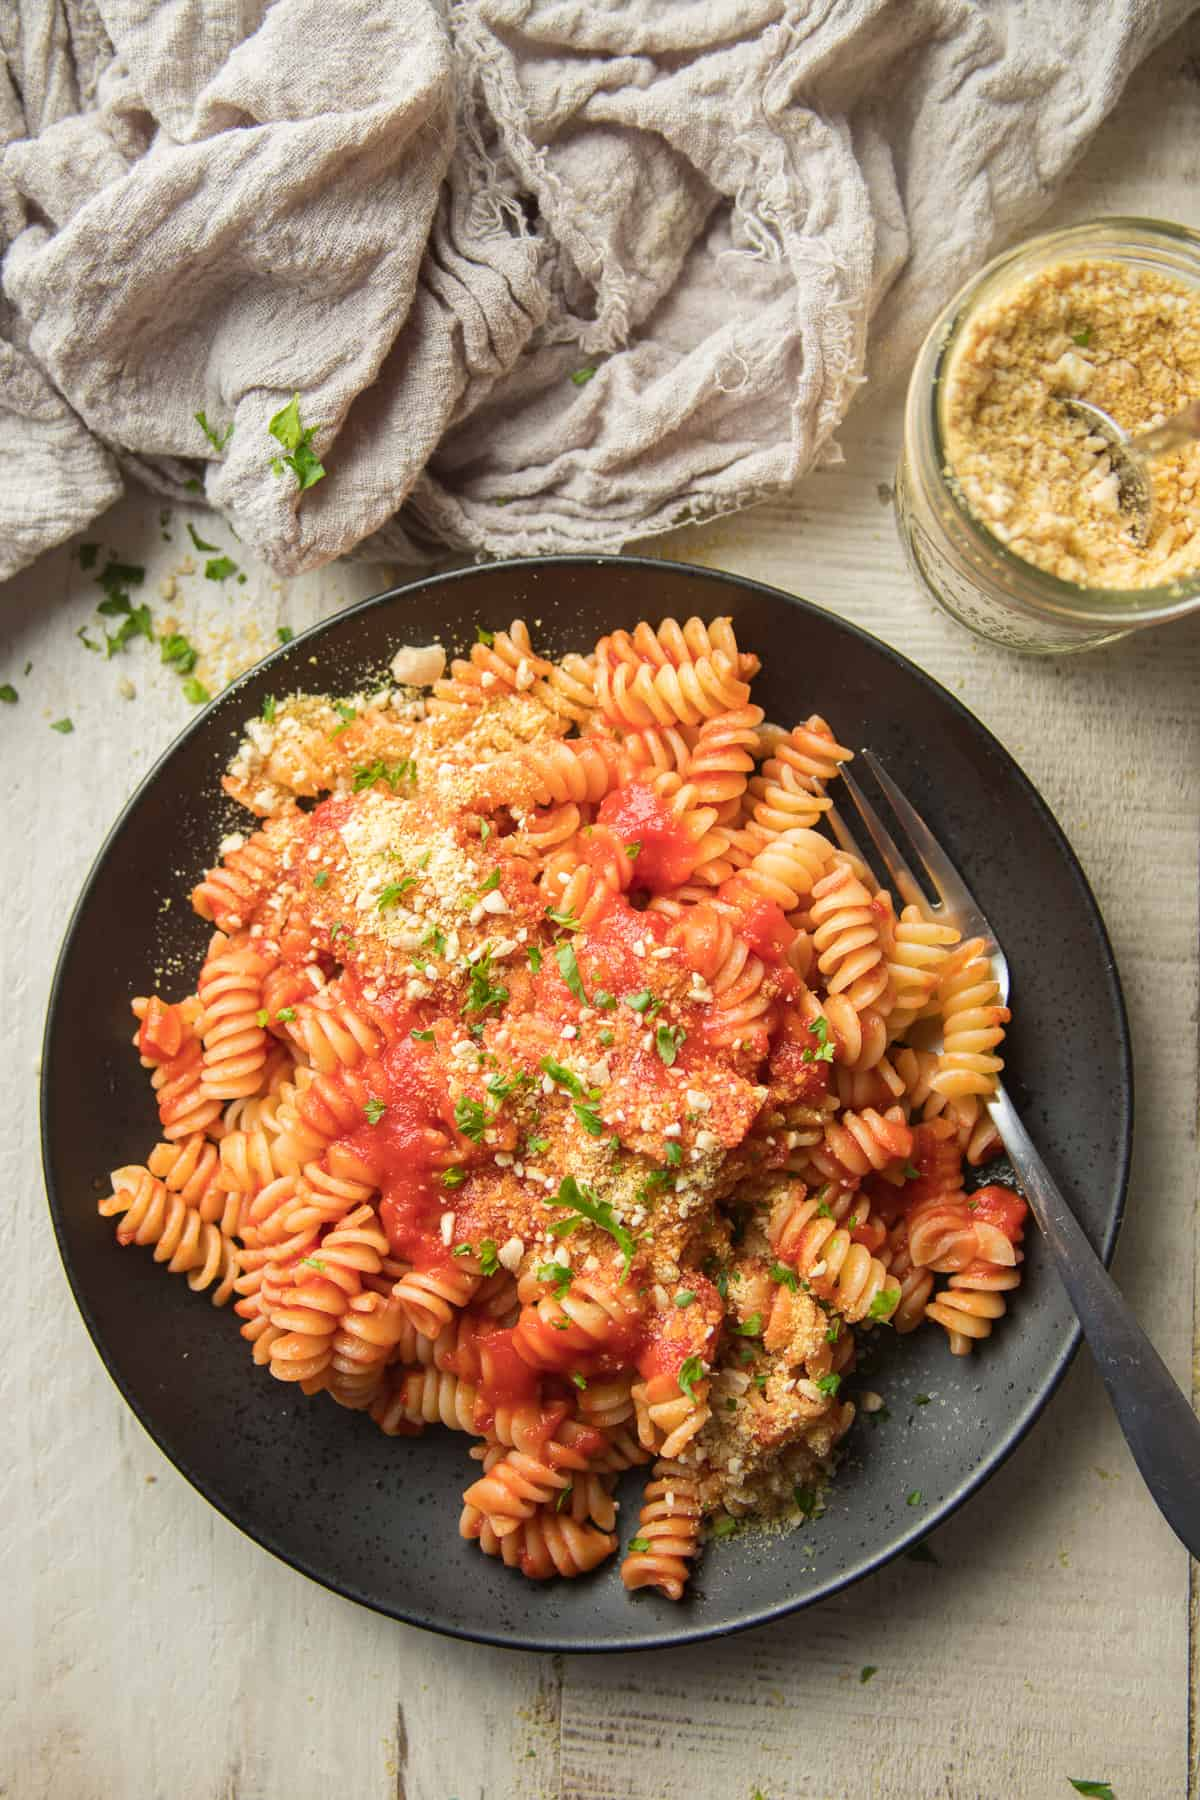 Plate of Rotini Pasta Topped with Tomato Sauce and Vegan Parmesan Cheese